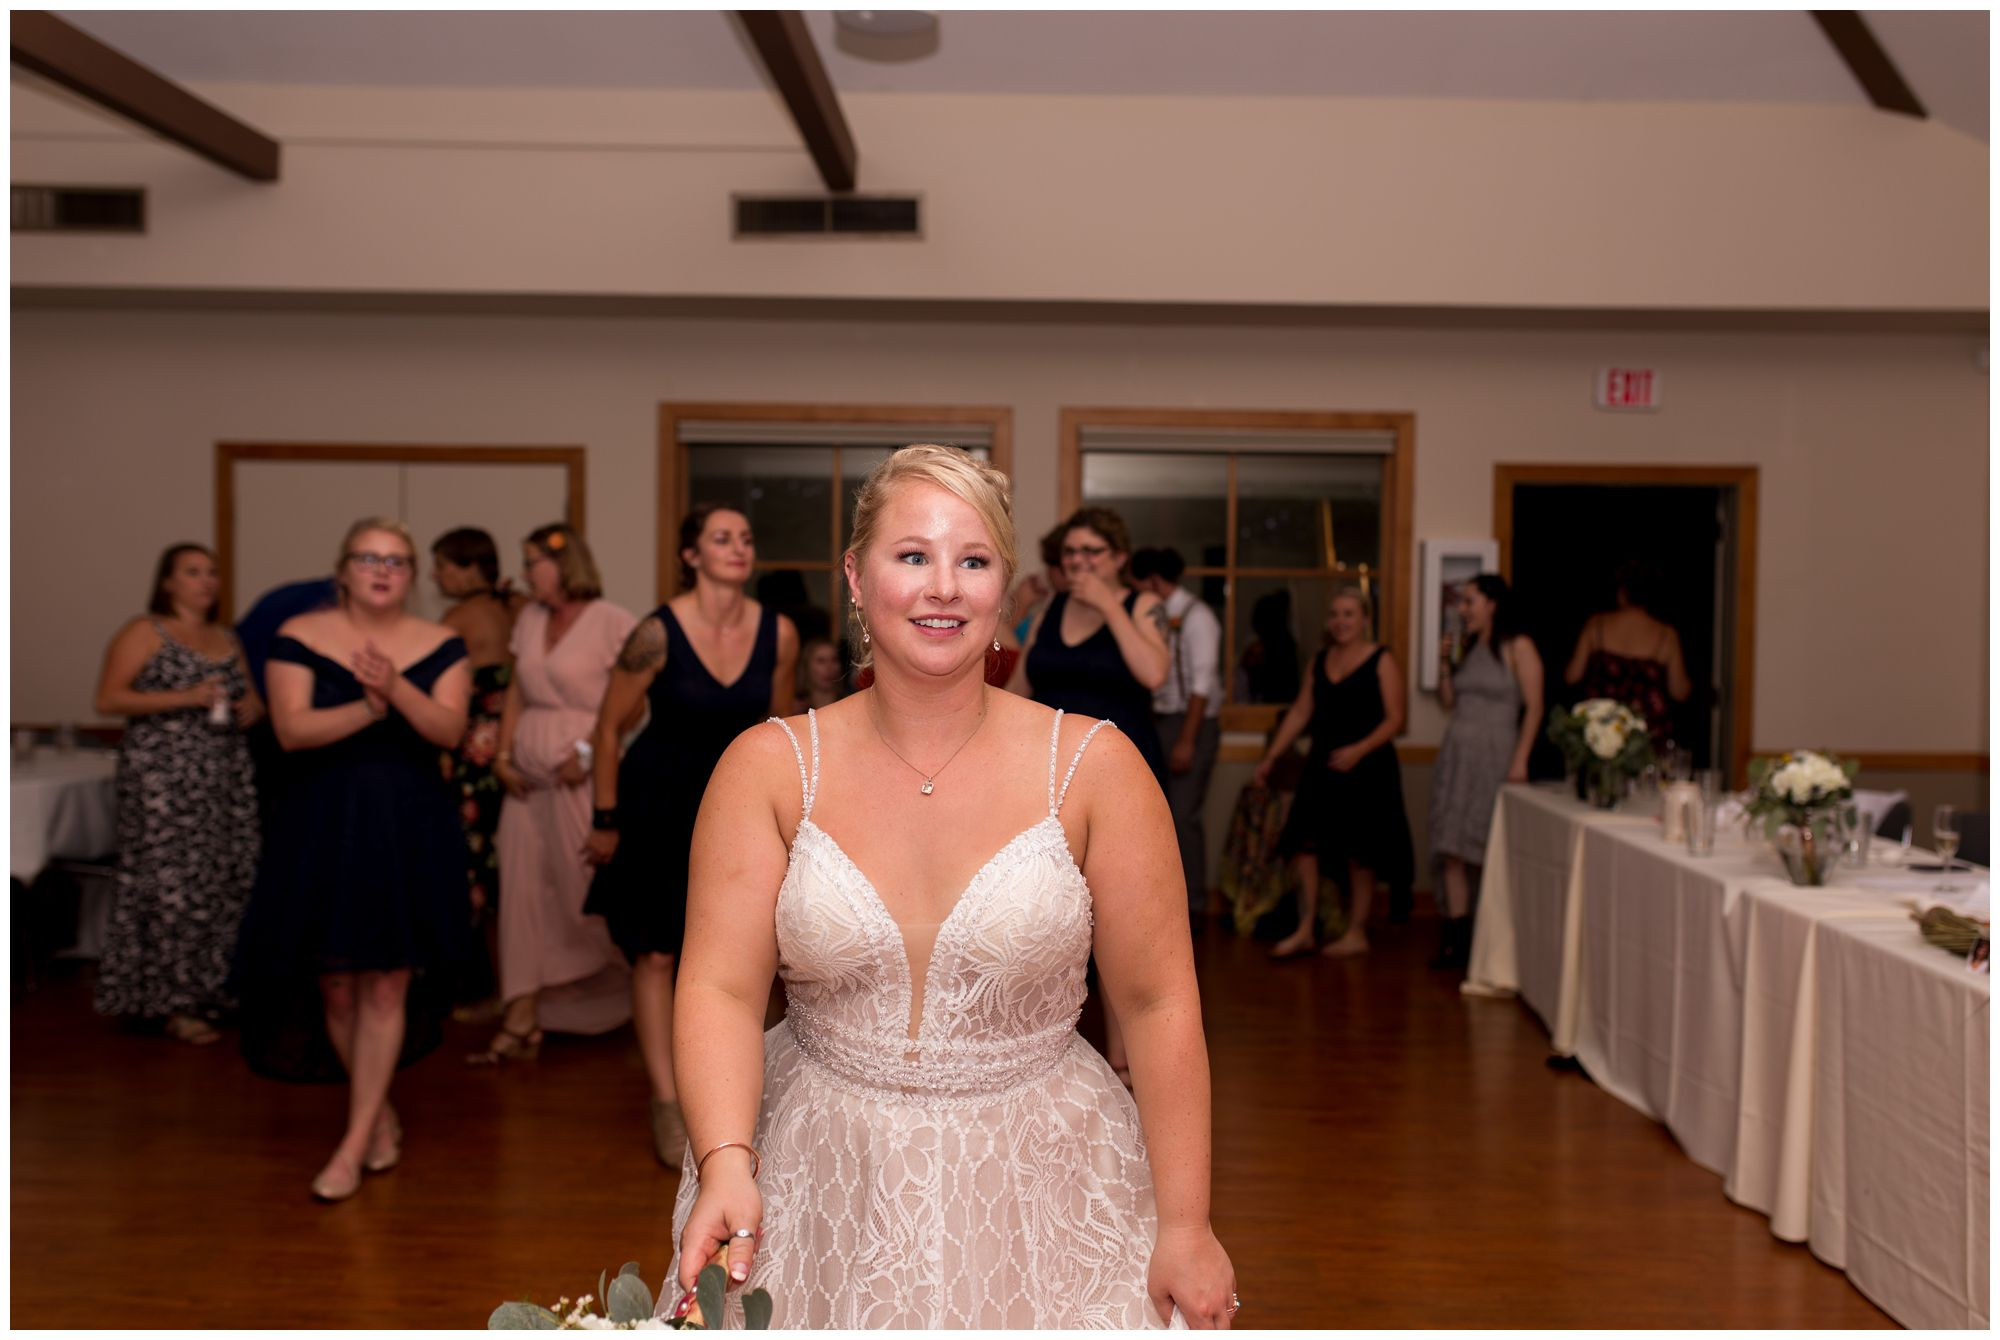 Forest Park Inn wedding reception in Noblesville Indiana